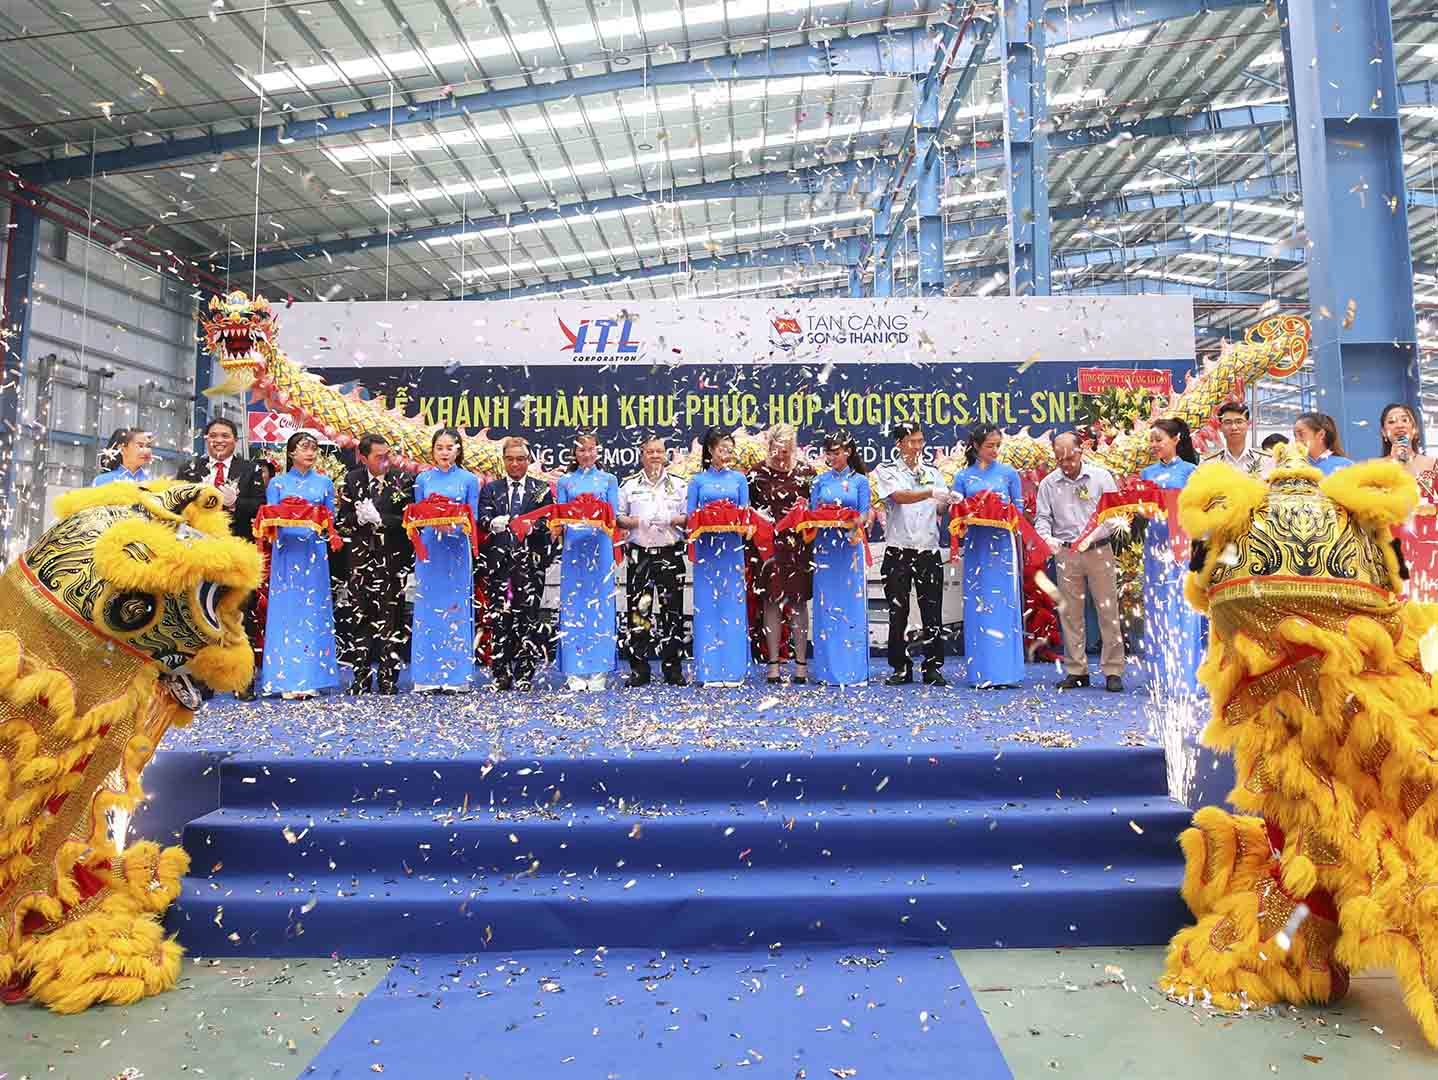 GRAND OPENING CEREMONY OF ITL-SNP INTEGRATED LOGISTICS COMPLEX